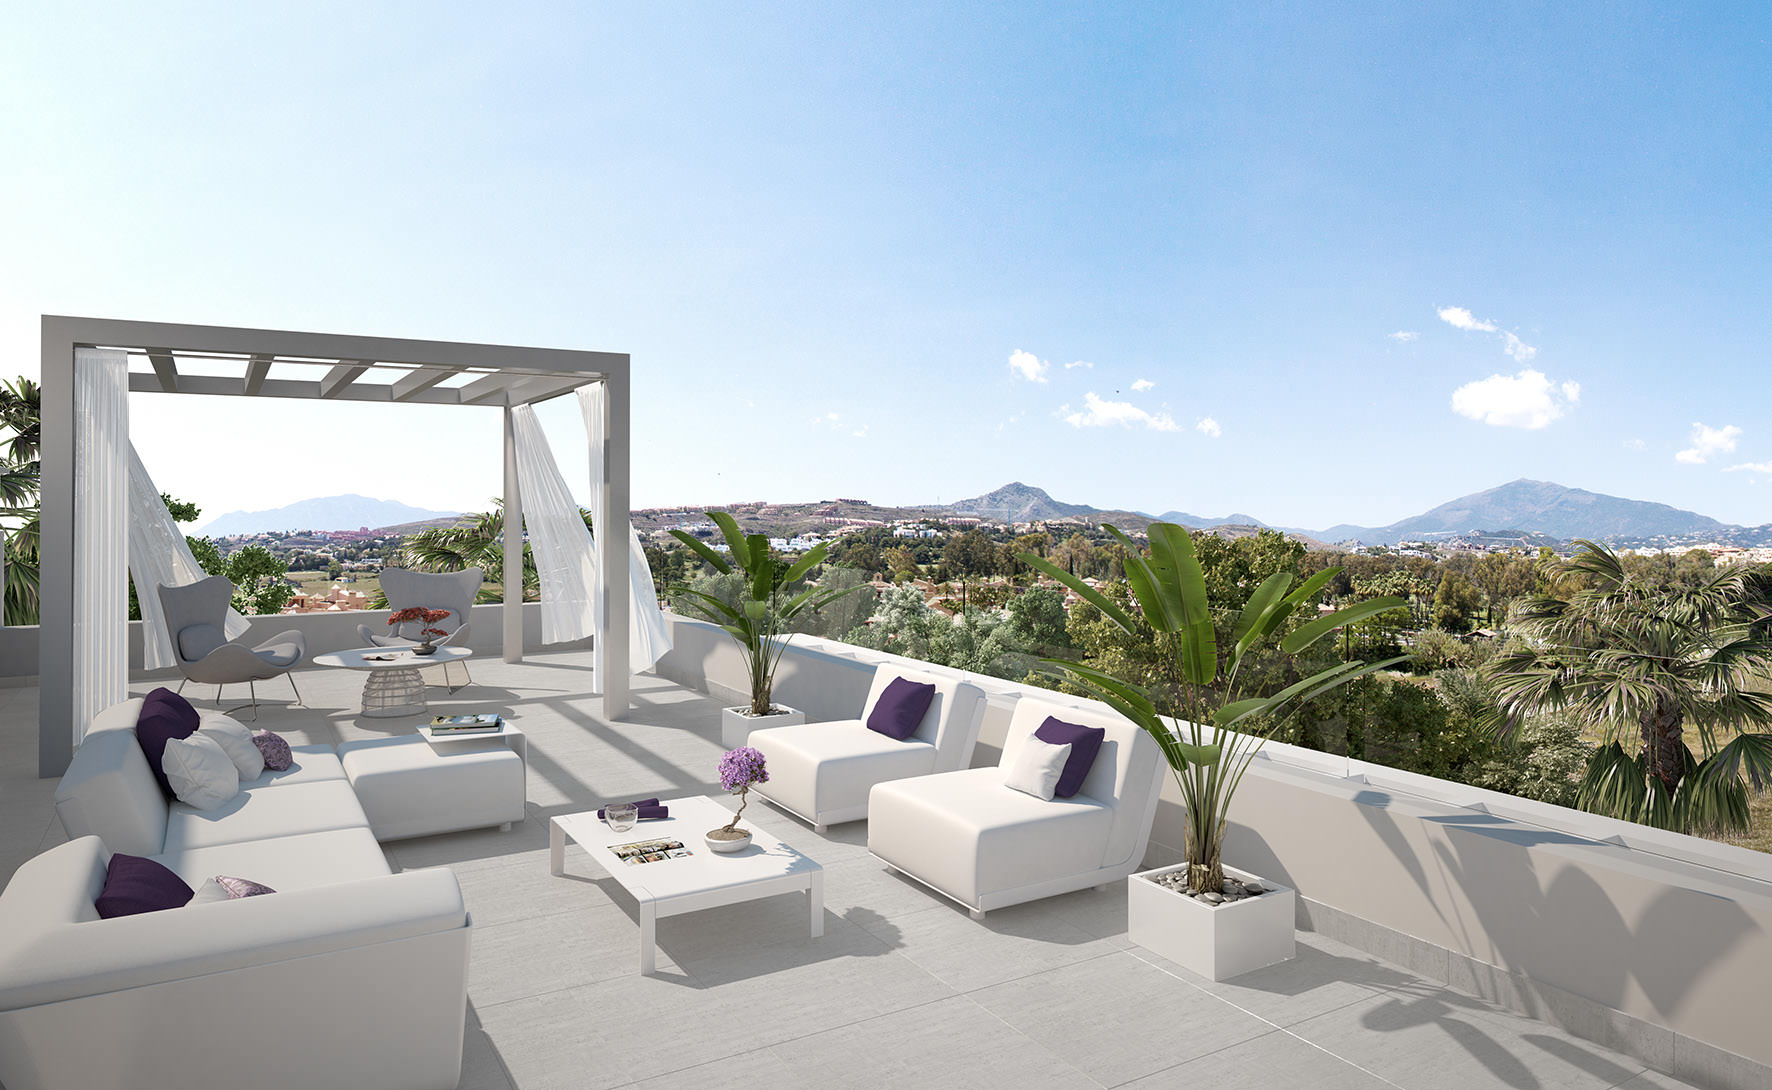 New penthouse for sale Cataleya Estepona with large terrace • Realista